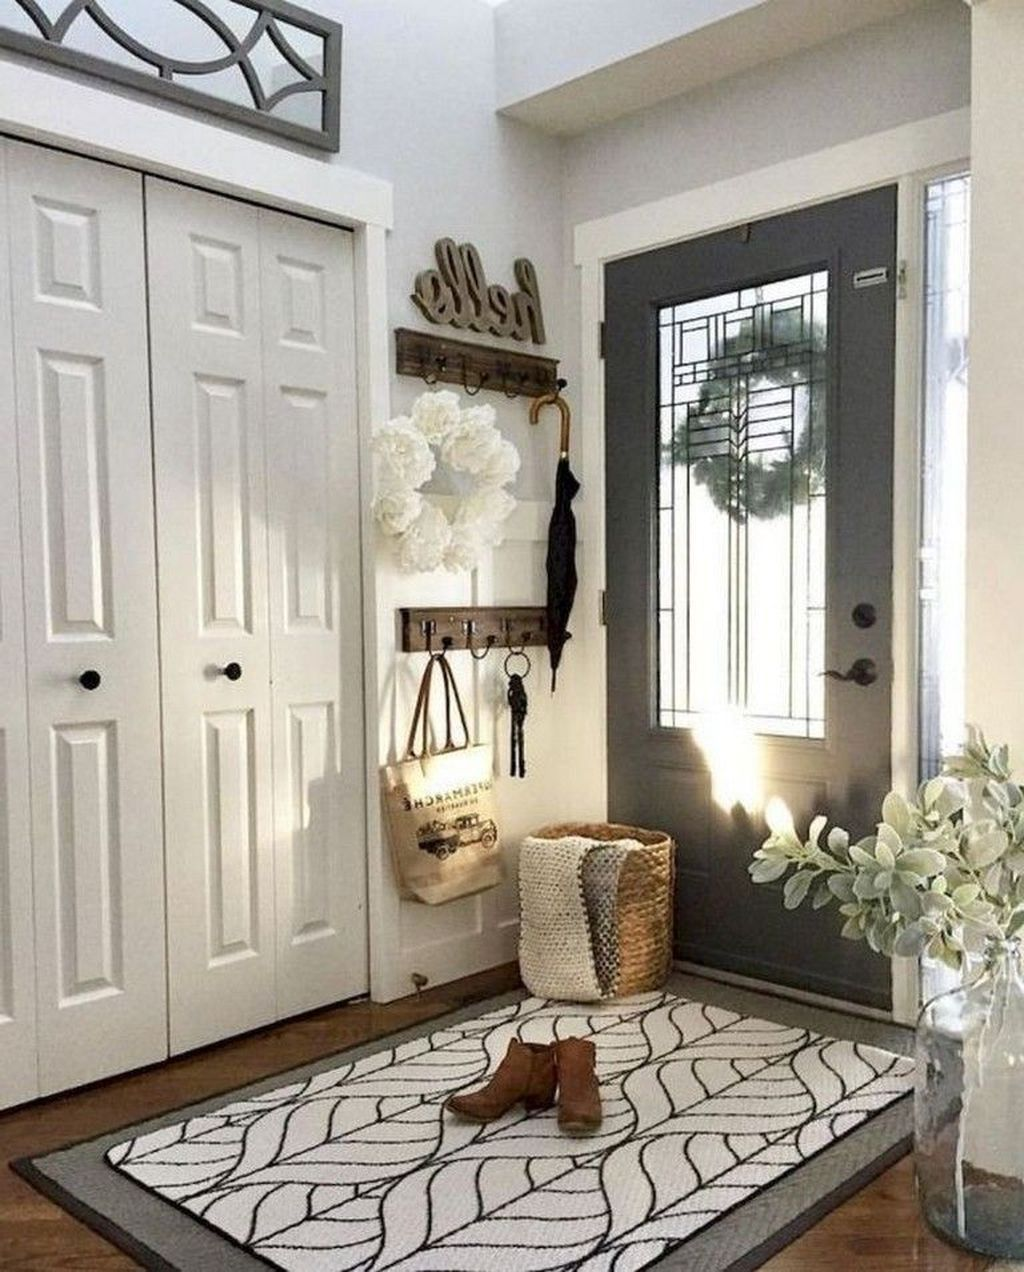 58 Entryway Rug Ideas 2020 To Spruce Up Your Foyer In 2020